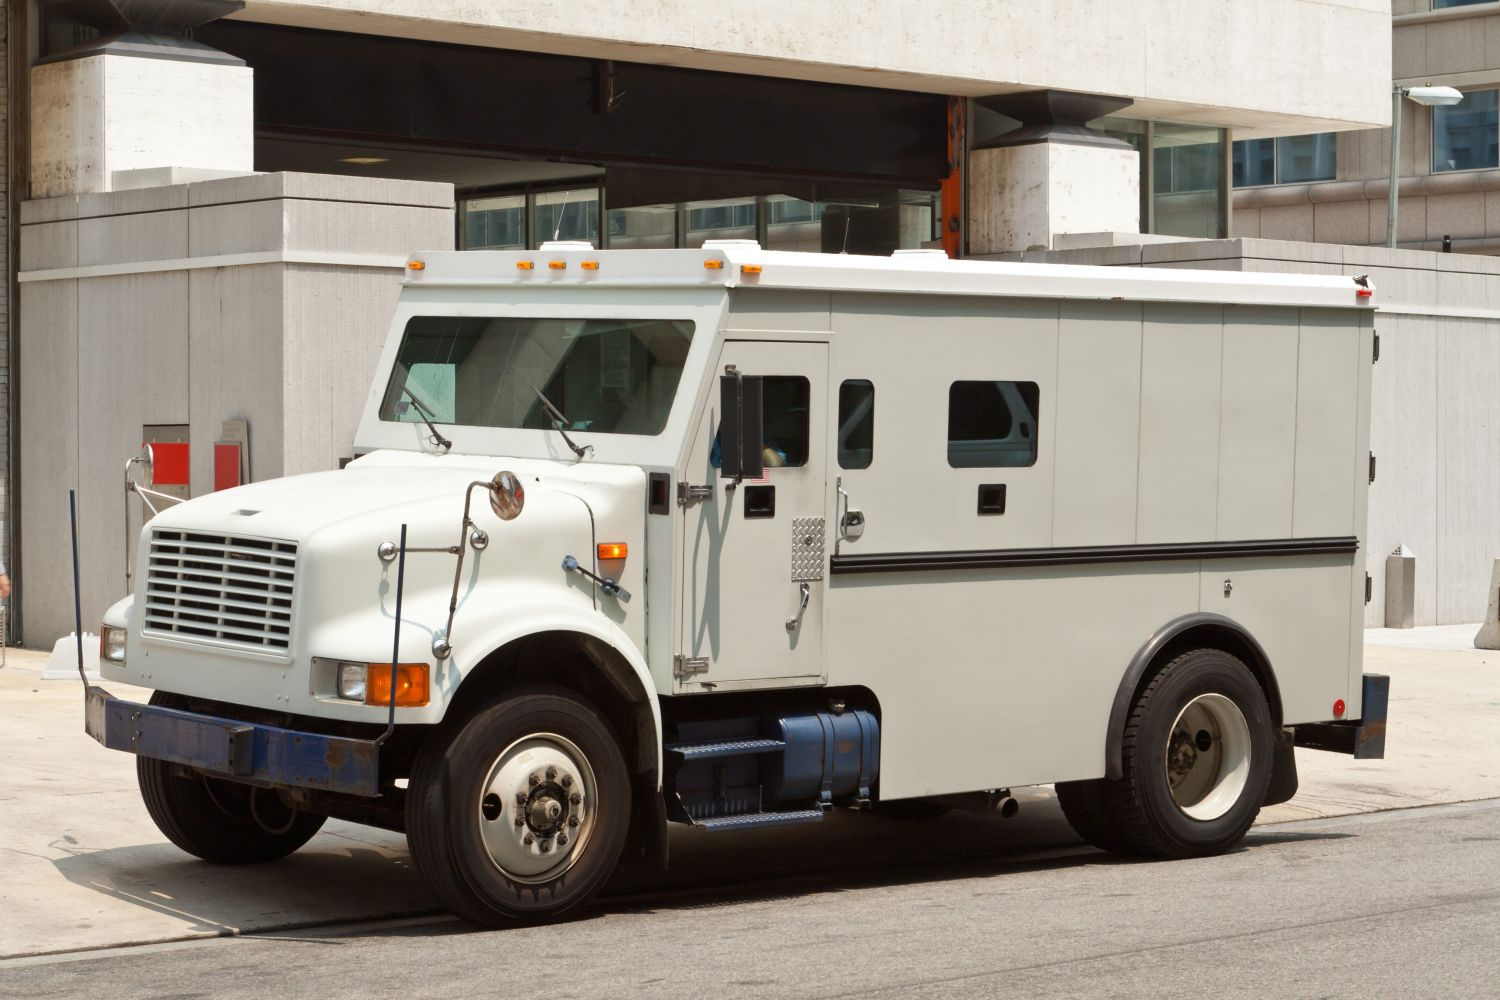 Armored delivery service in Honolulu, HI